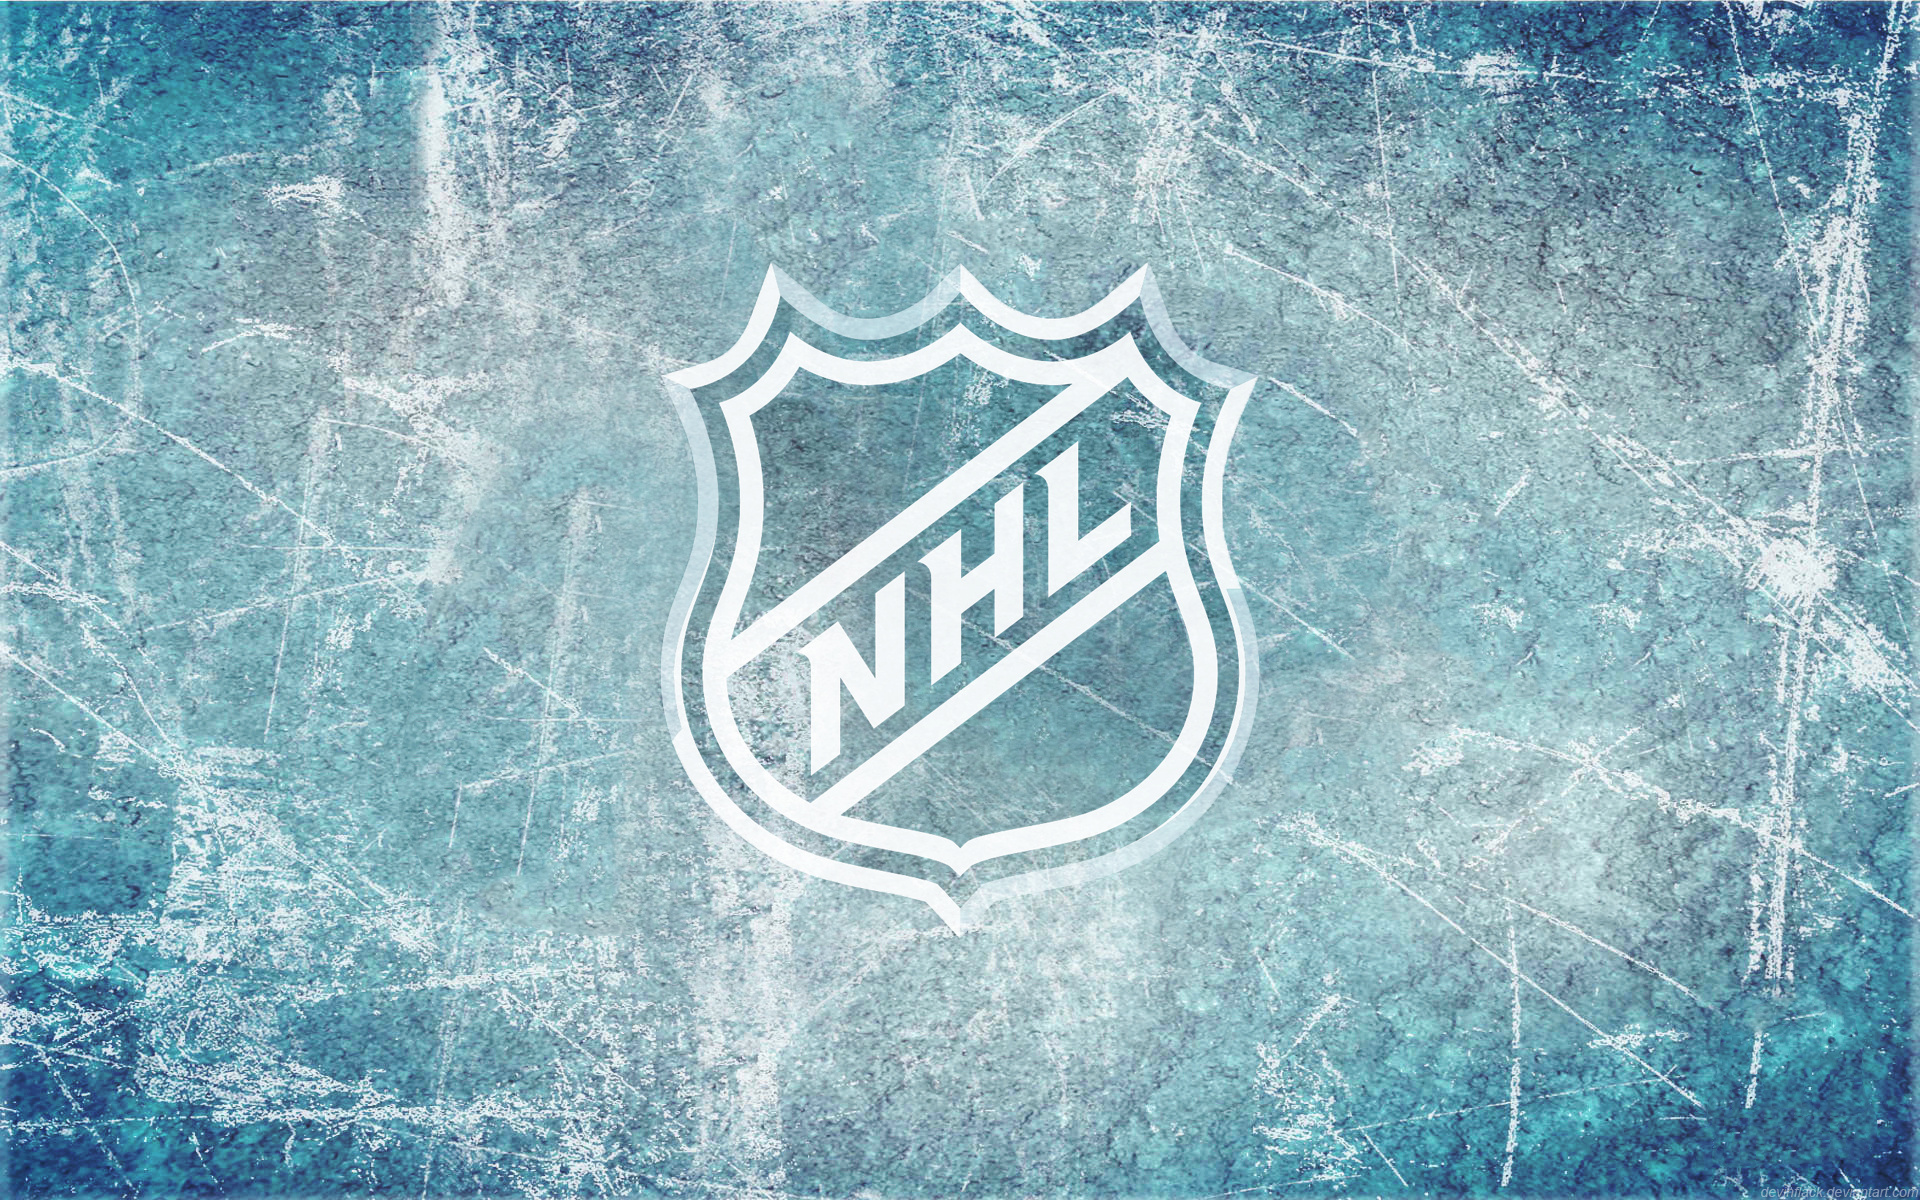 Download Nhl Ice, stick, hockey, 1920x1200 wallpaper ...